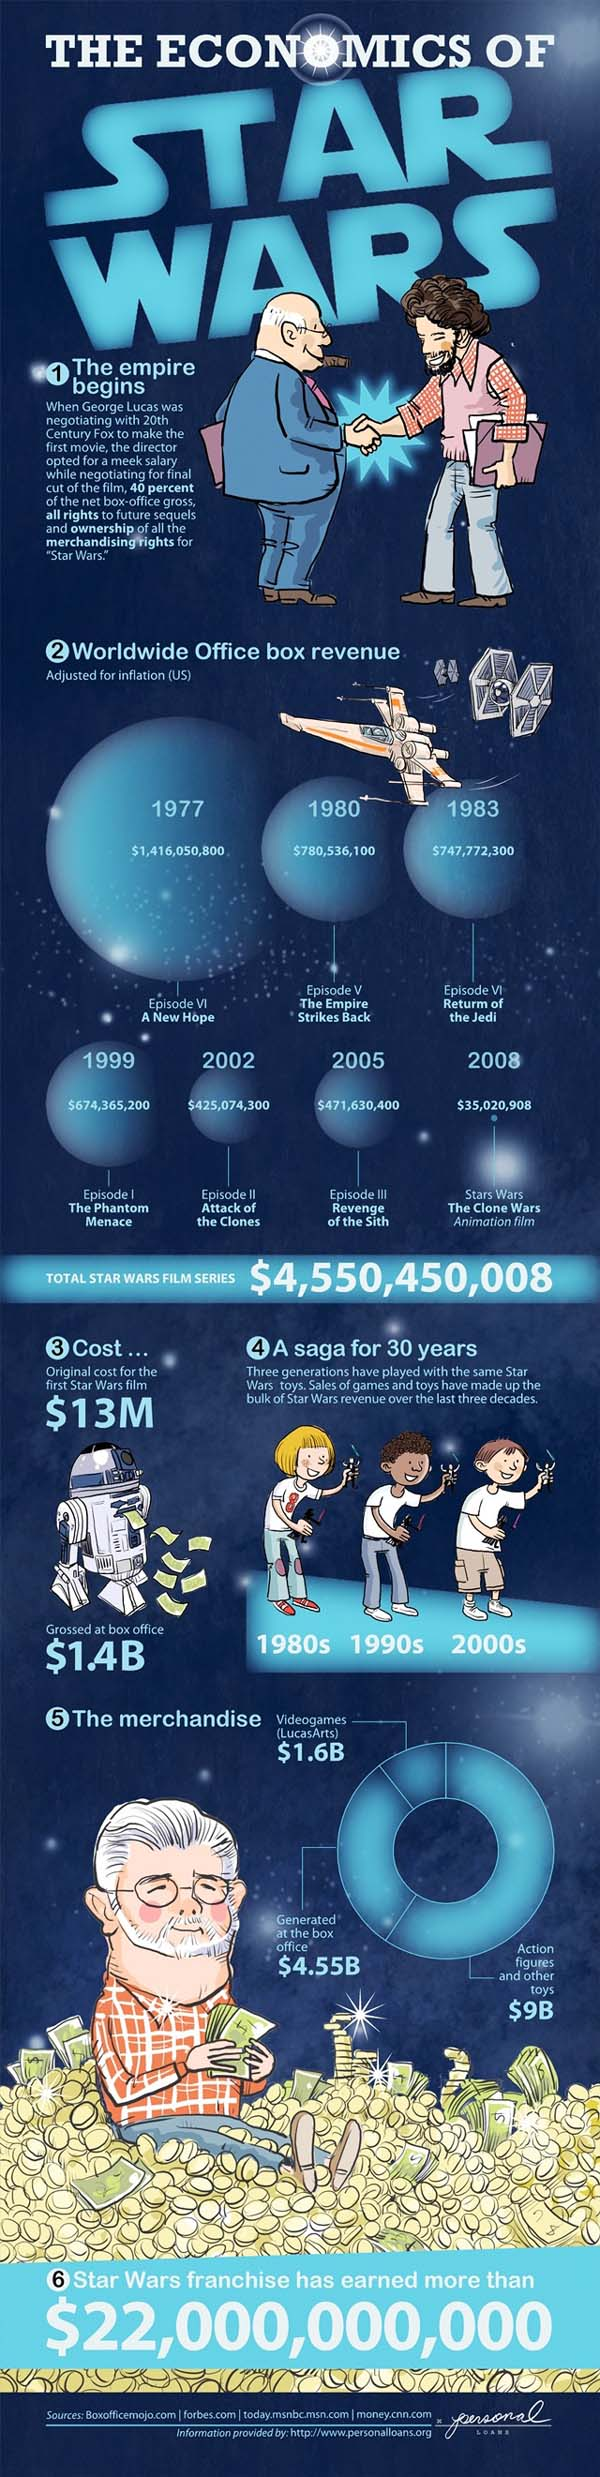 The Economics Of The Star Wars Franchise [Infographic]